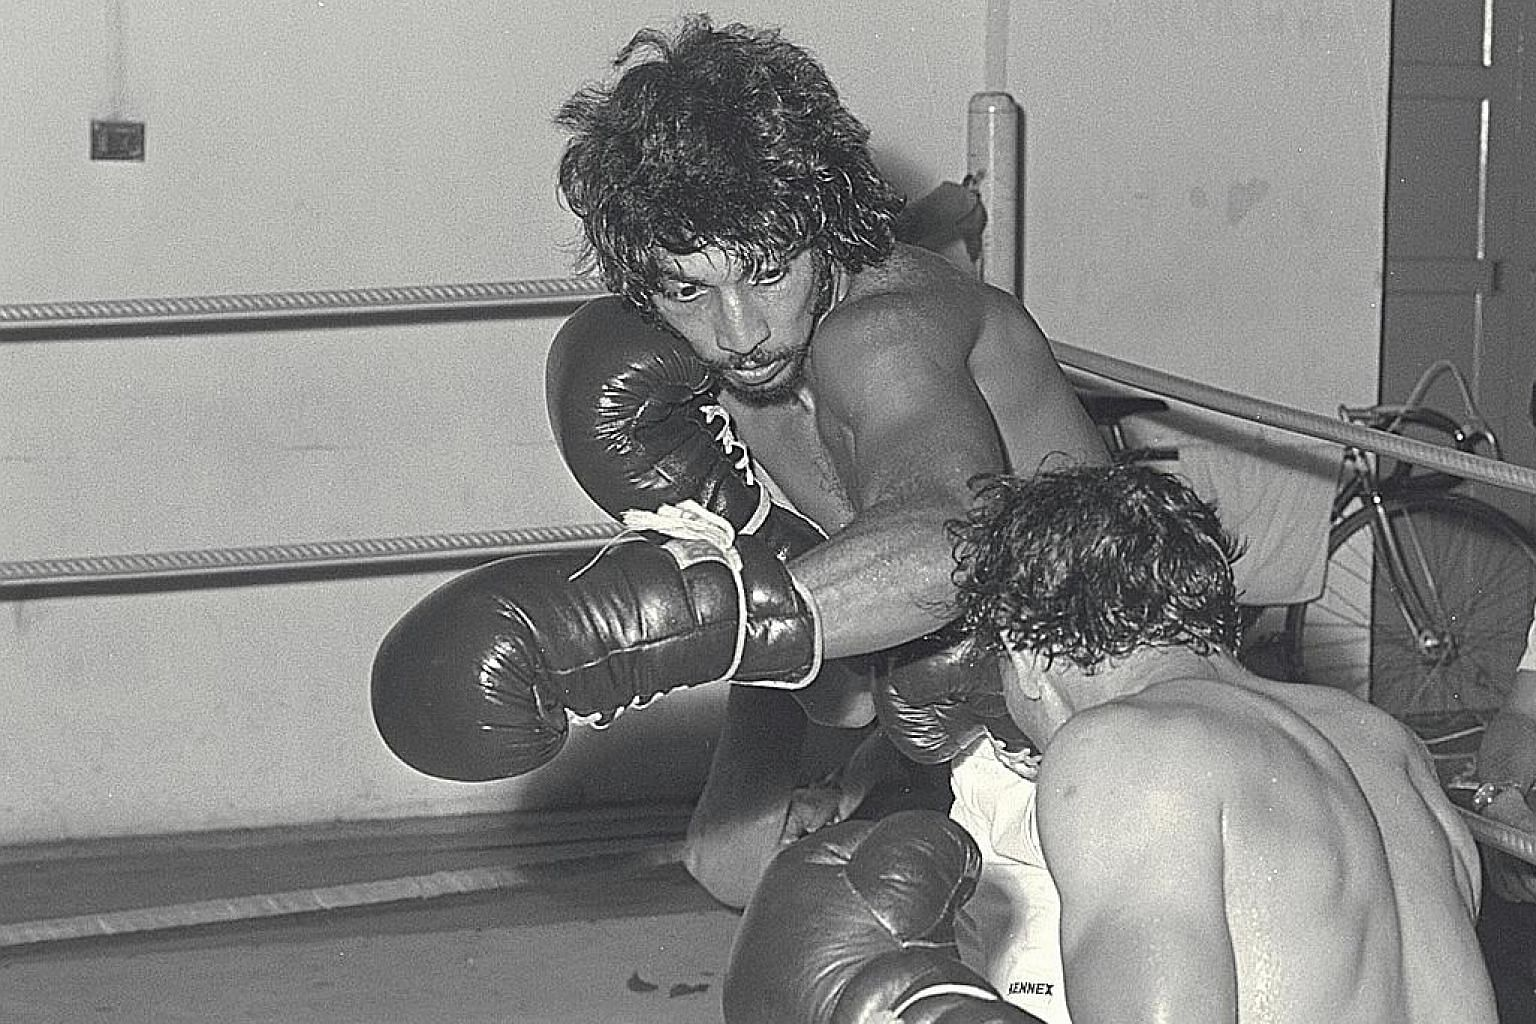 Cyril Jeeris, silver medallist at the 1975 Asian championships, sparring at Farrer Park Gymnasium in 1980. ST FILE PHOTO